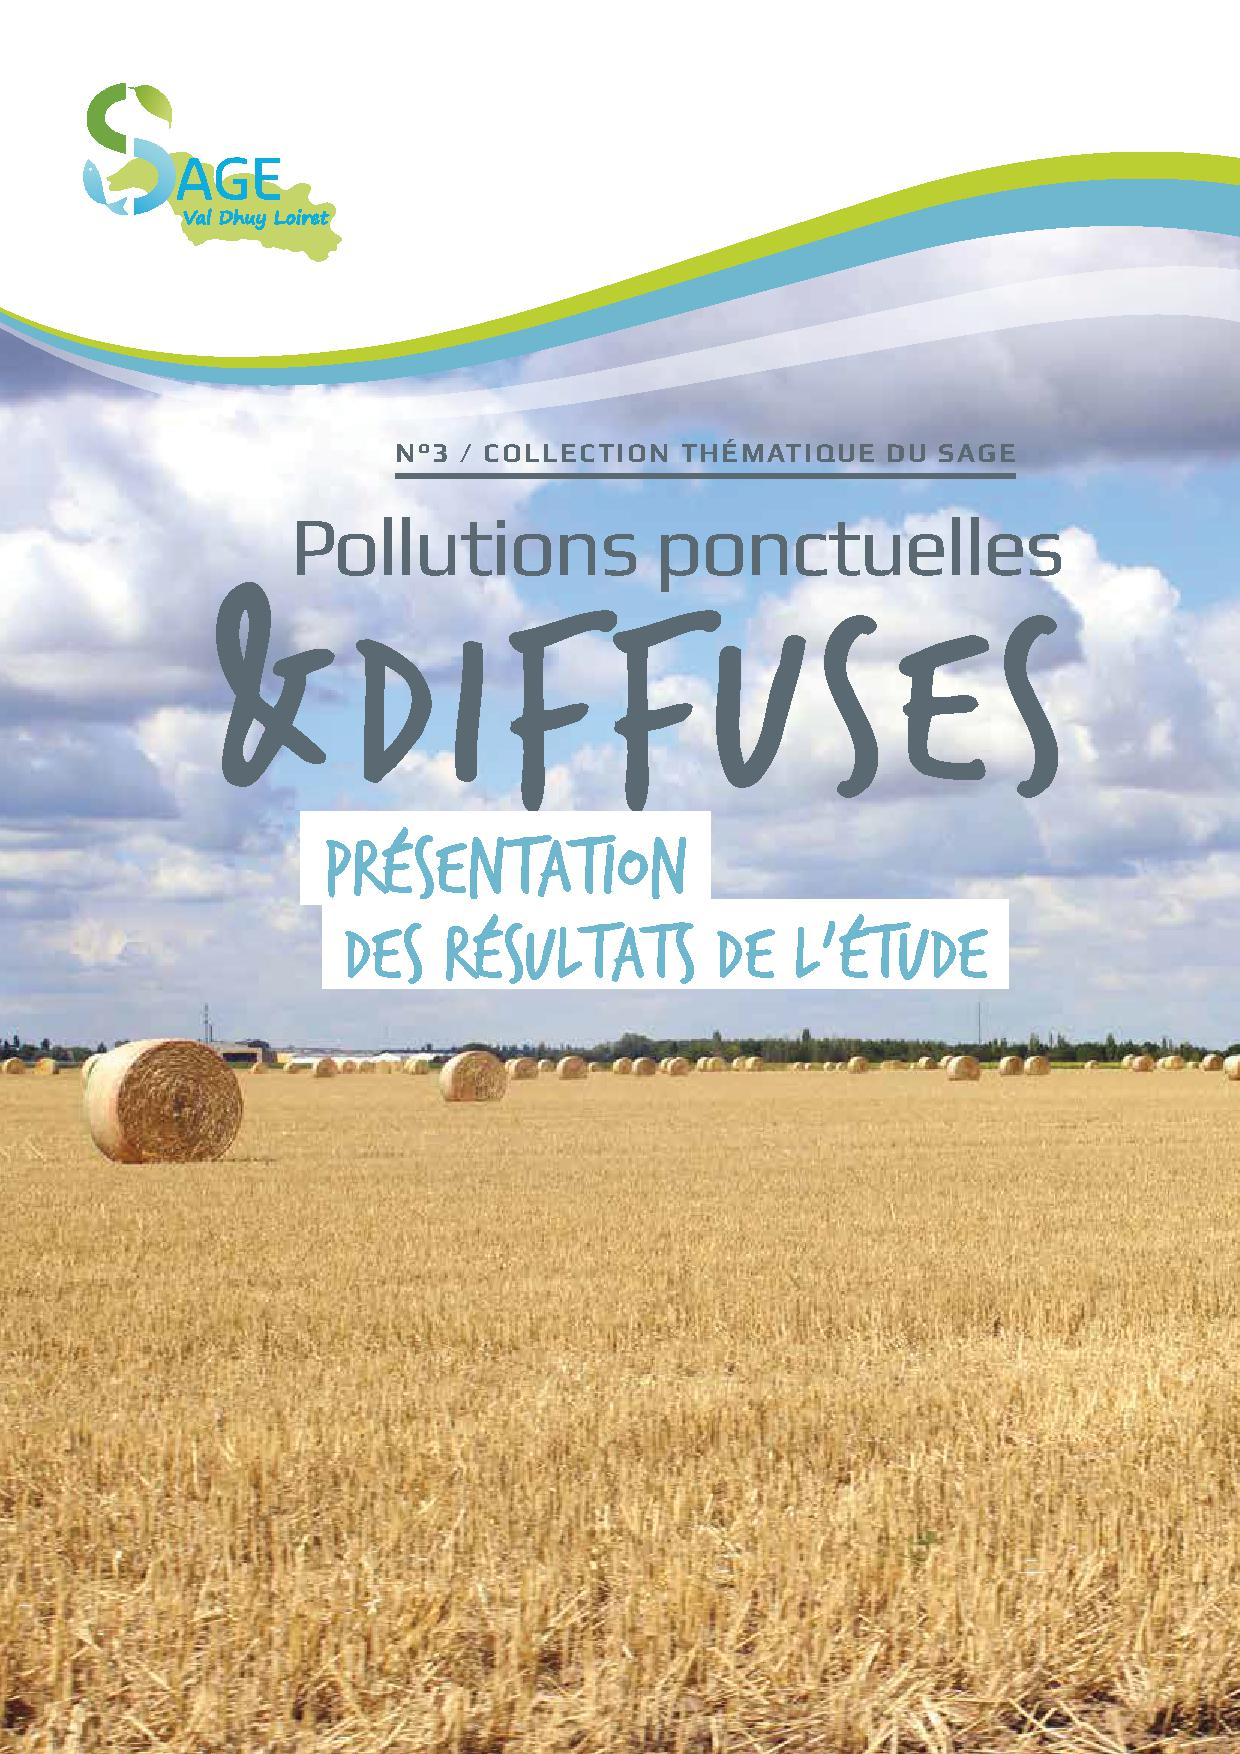 1_pdfsam_Plaquette_PollutionDiffuses_84x29,7_3plis_PAGE_BD